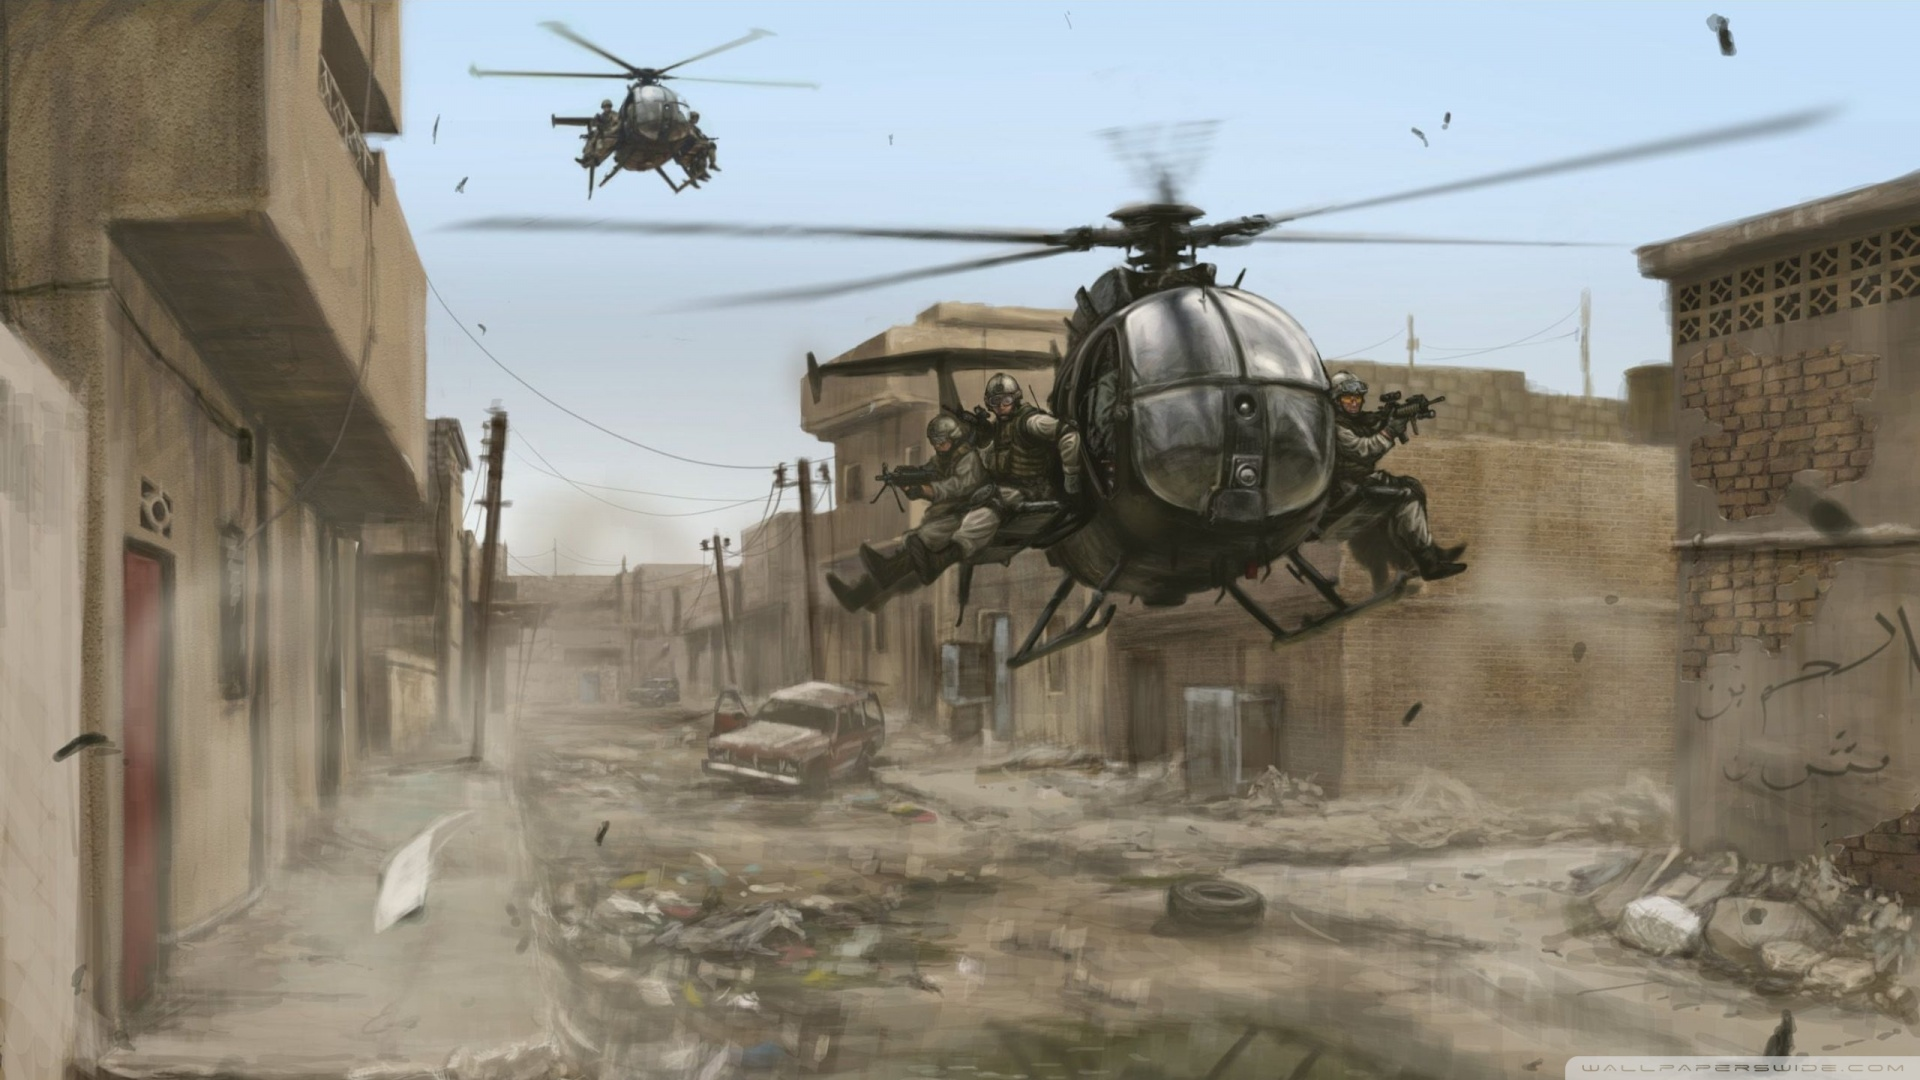 Free Download Download Military Helicopter 2 Wallpaper